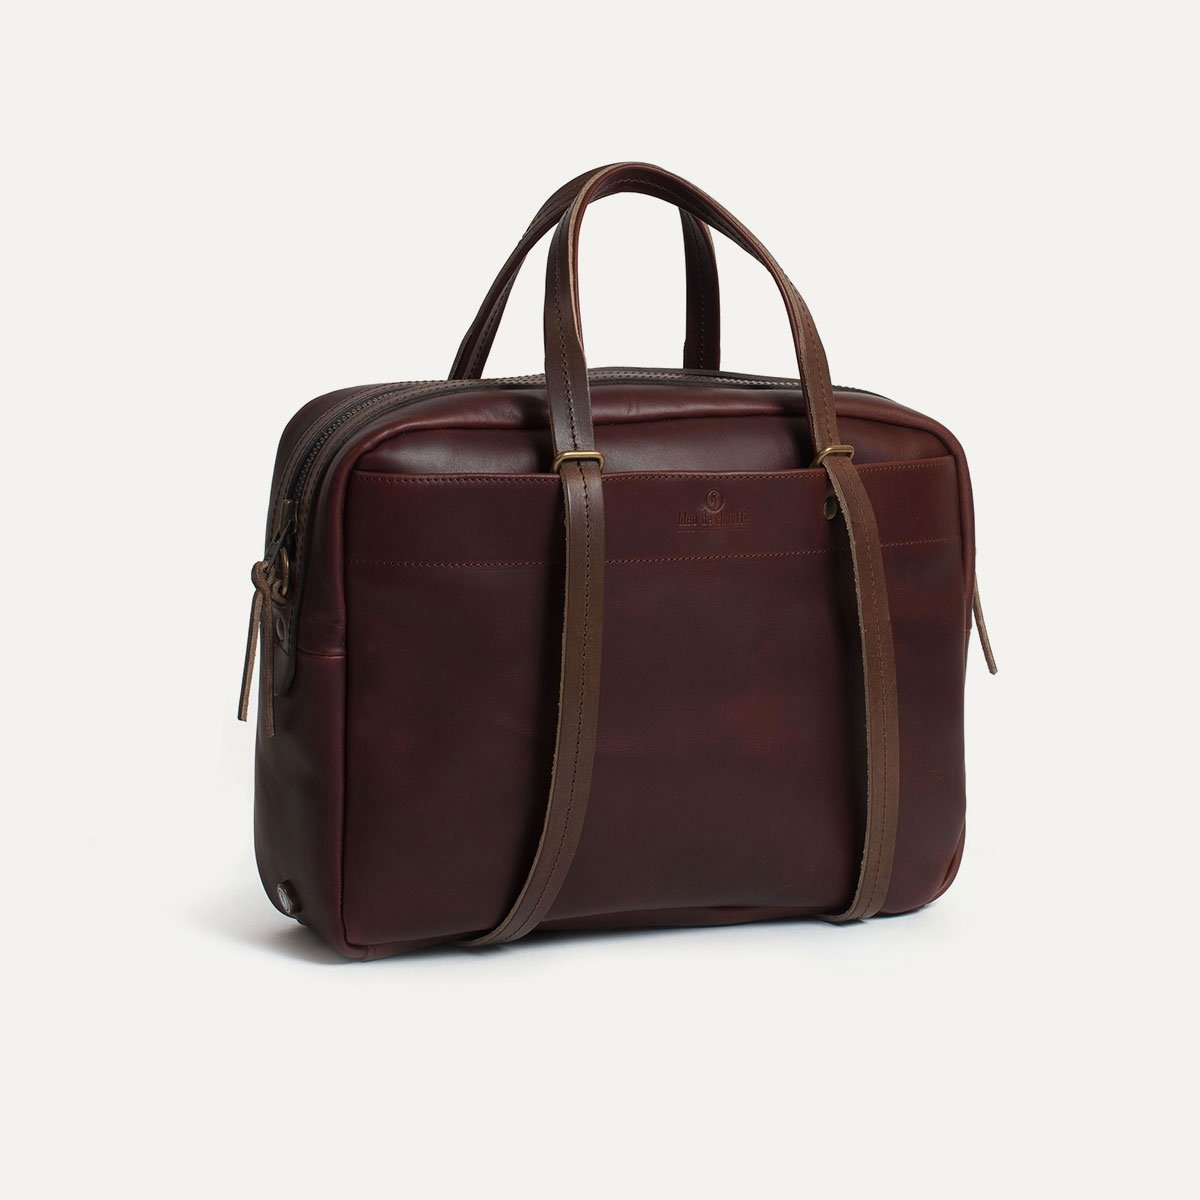 Business homme Business homme Sacs homme homme Business Sacs Sacs Sacs Business gzxwv5q